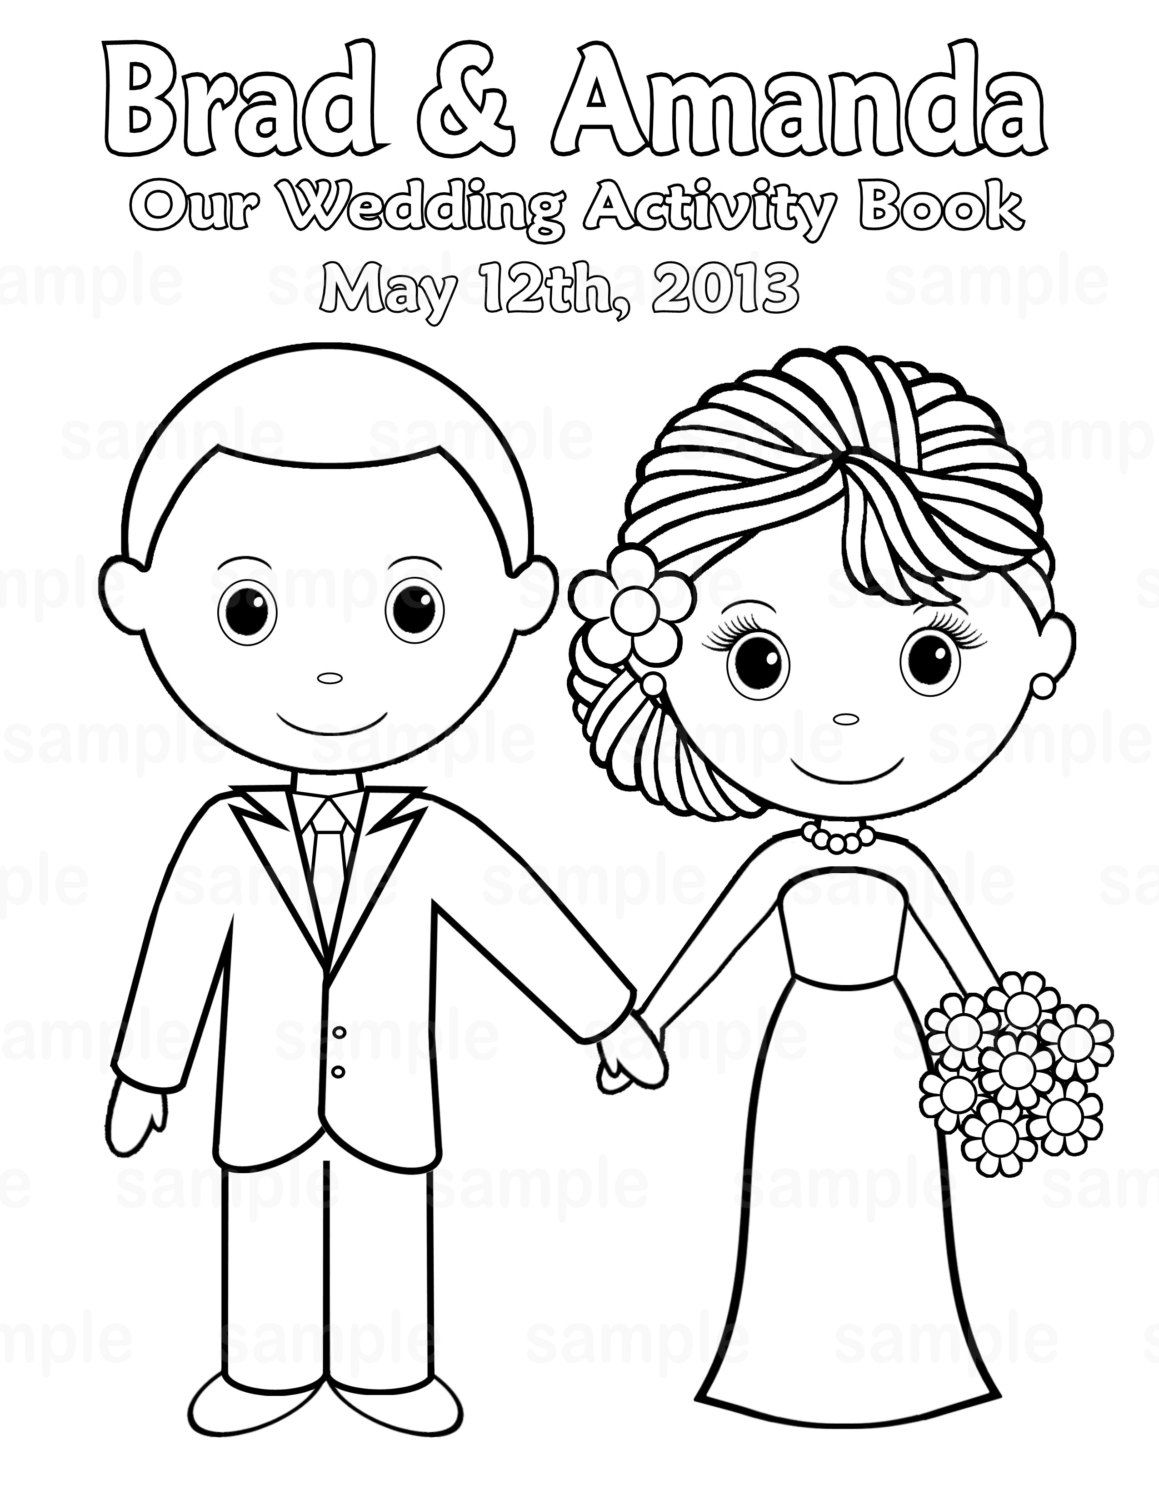 printable personalized wedding coloring activity book favor kids 85 x 11 pdf or jpeg template - Wedding Coloring Pages